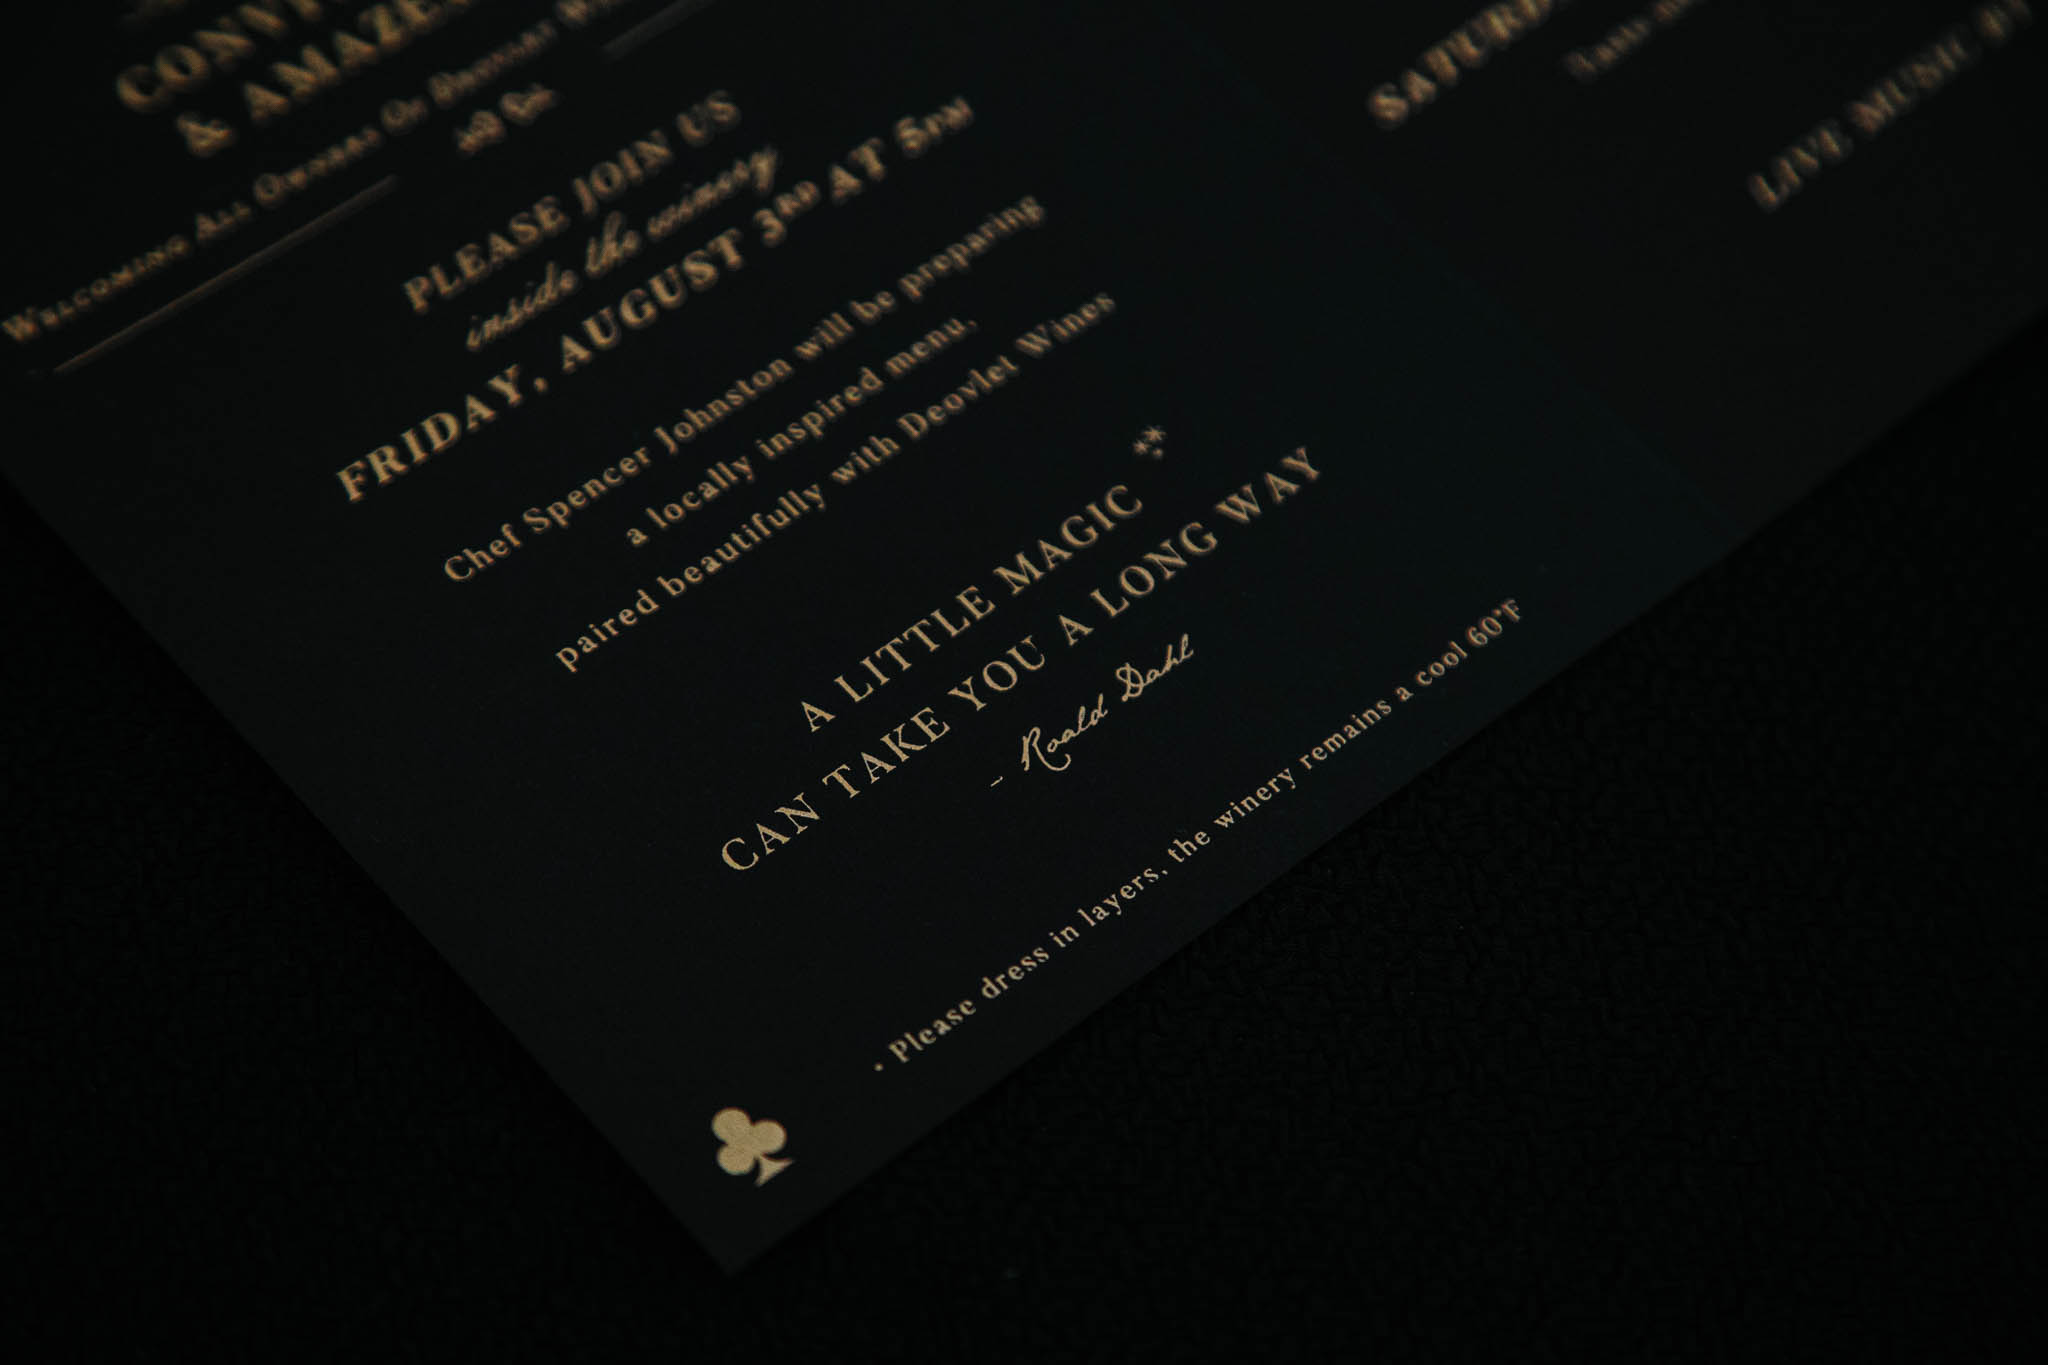 Invitation Designer of Magic Themed Invitation Suite Designed for San Luis Obispo winery, featuring gold metallic ink on black paper, Roald Dahl quote about magic